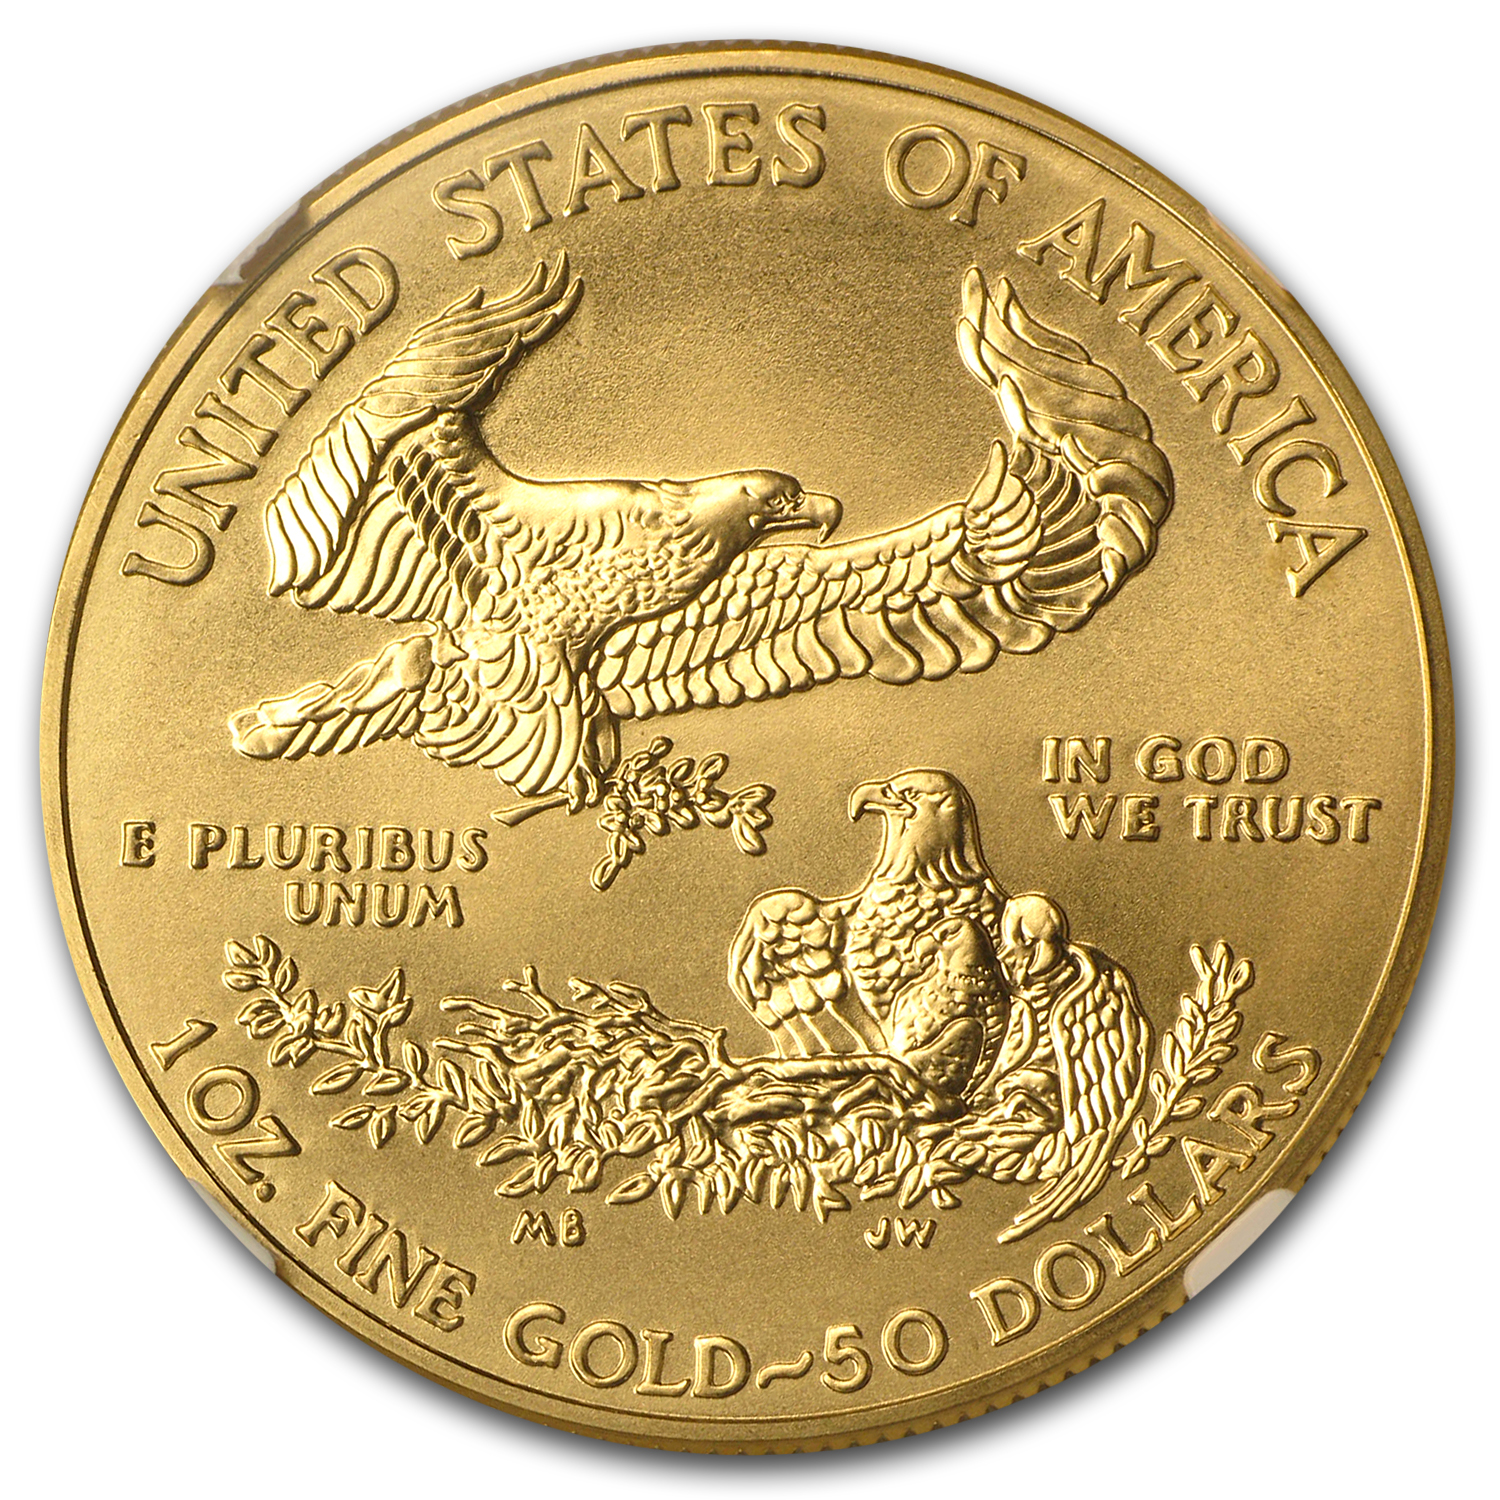 2013 1 oz Gold American Eagle MS-69 First Releases